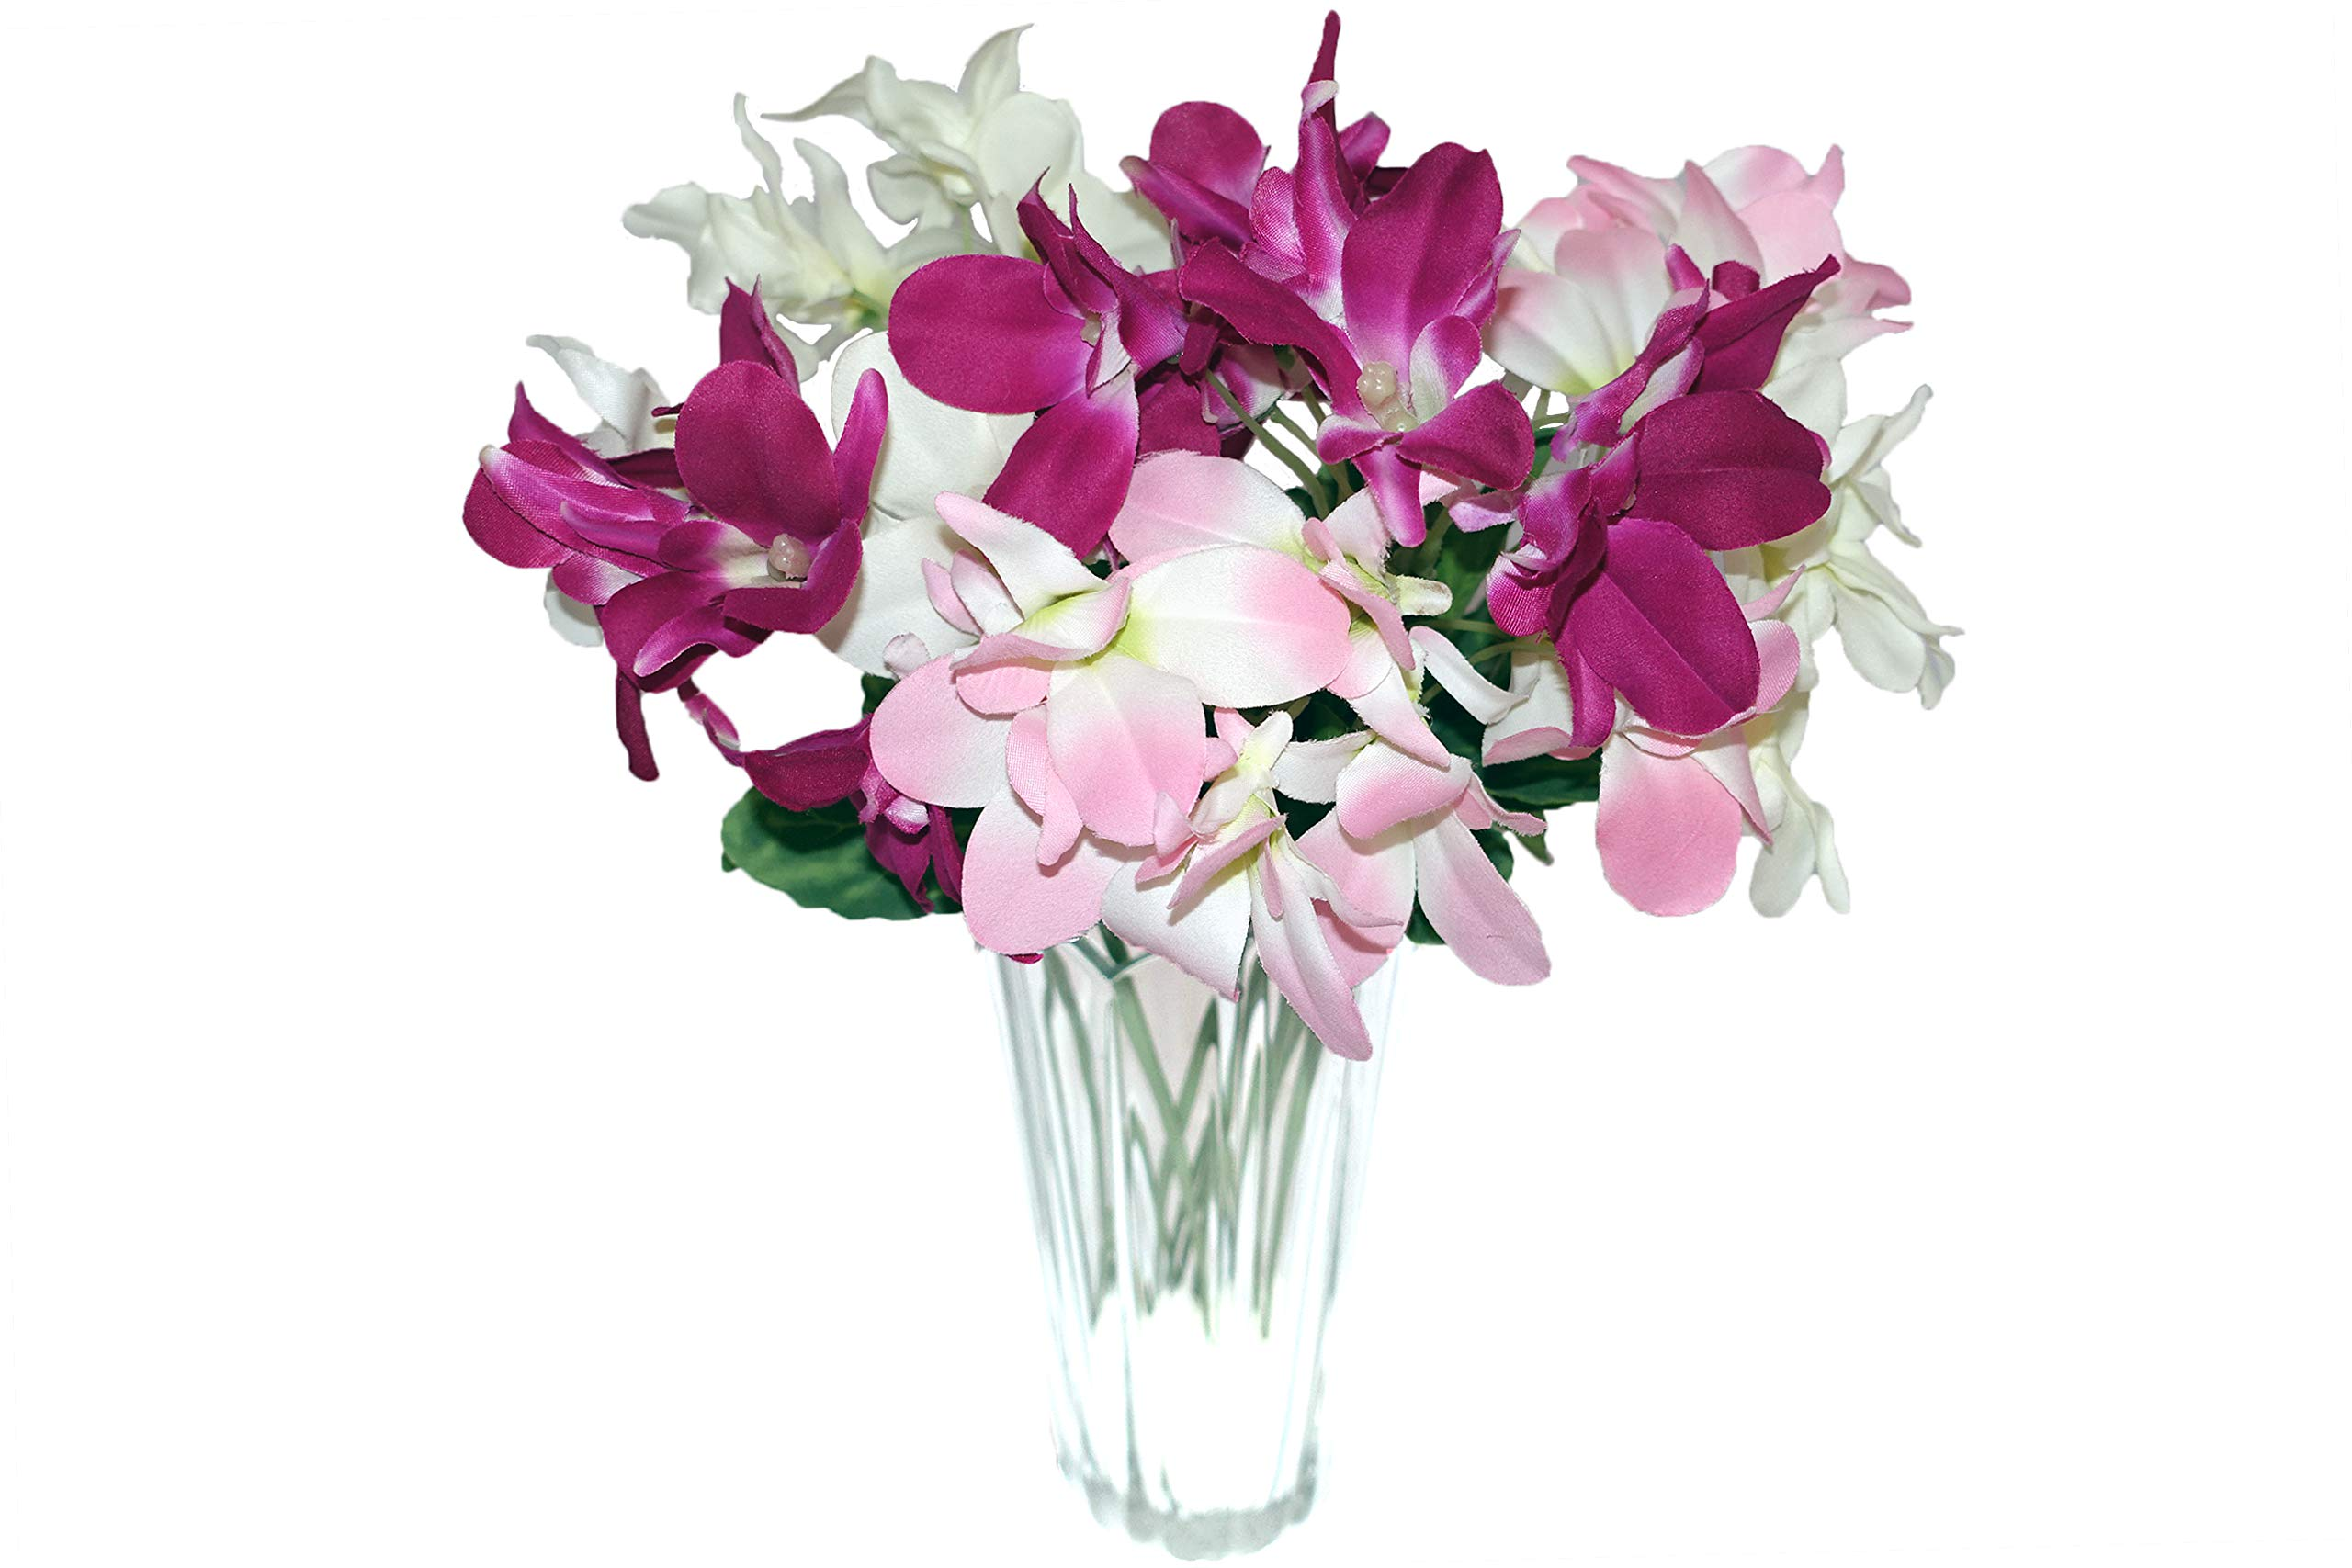 SKFLO Orchid Silk Flowers Decorations – 9 Stems per Bunch in 3 Colors – Handmade Orchid Artificial Flowers – Decorative Centerpiece – Flower Arrangements Décor for Weddings, Home & Office